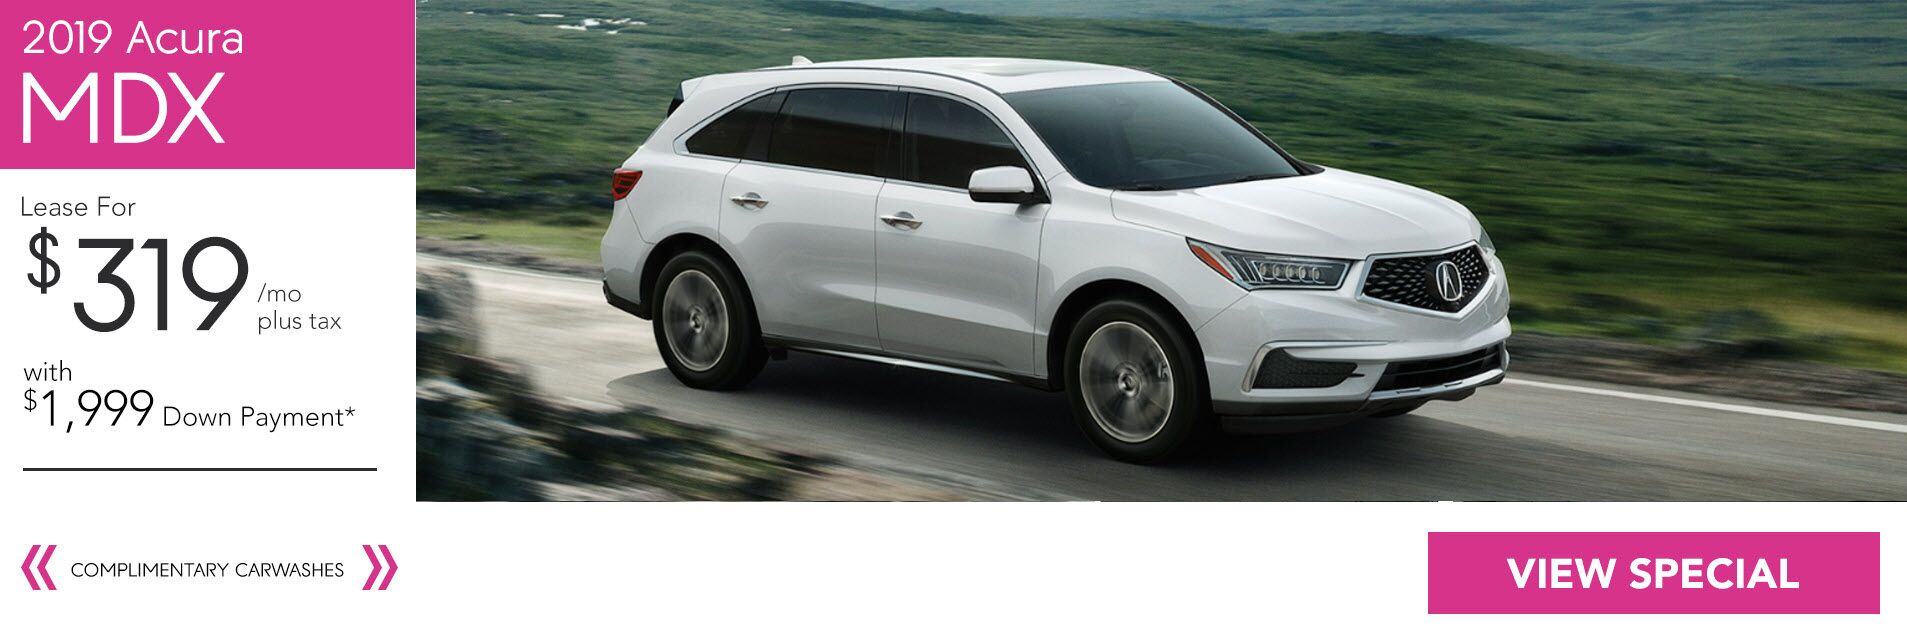 2019 Acura MDX for $319/36 Mo. with $1,999 Down